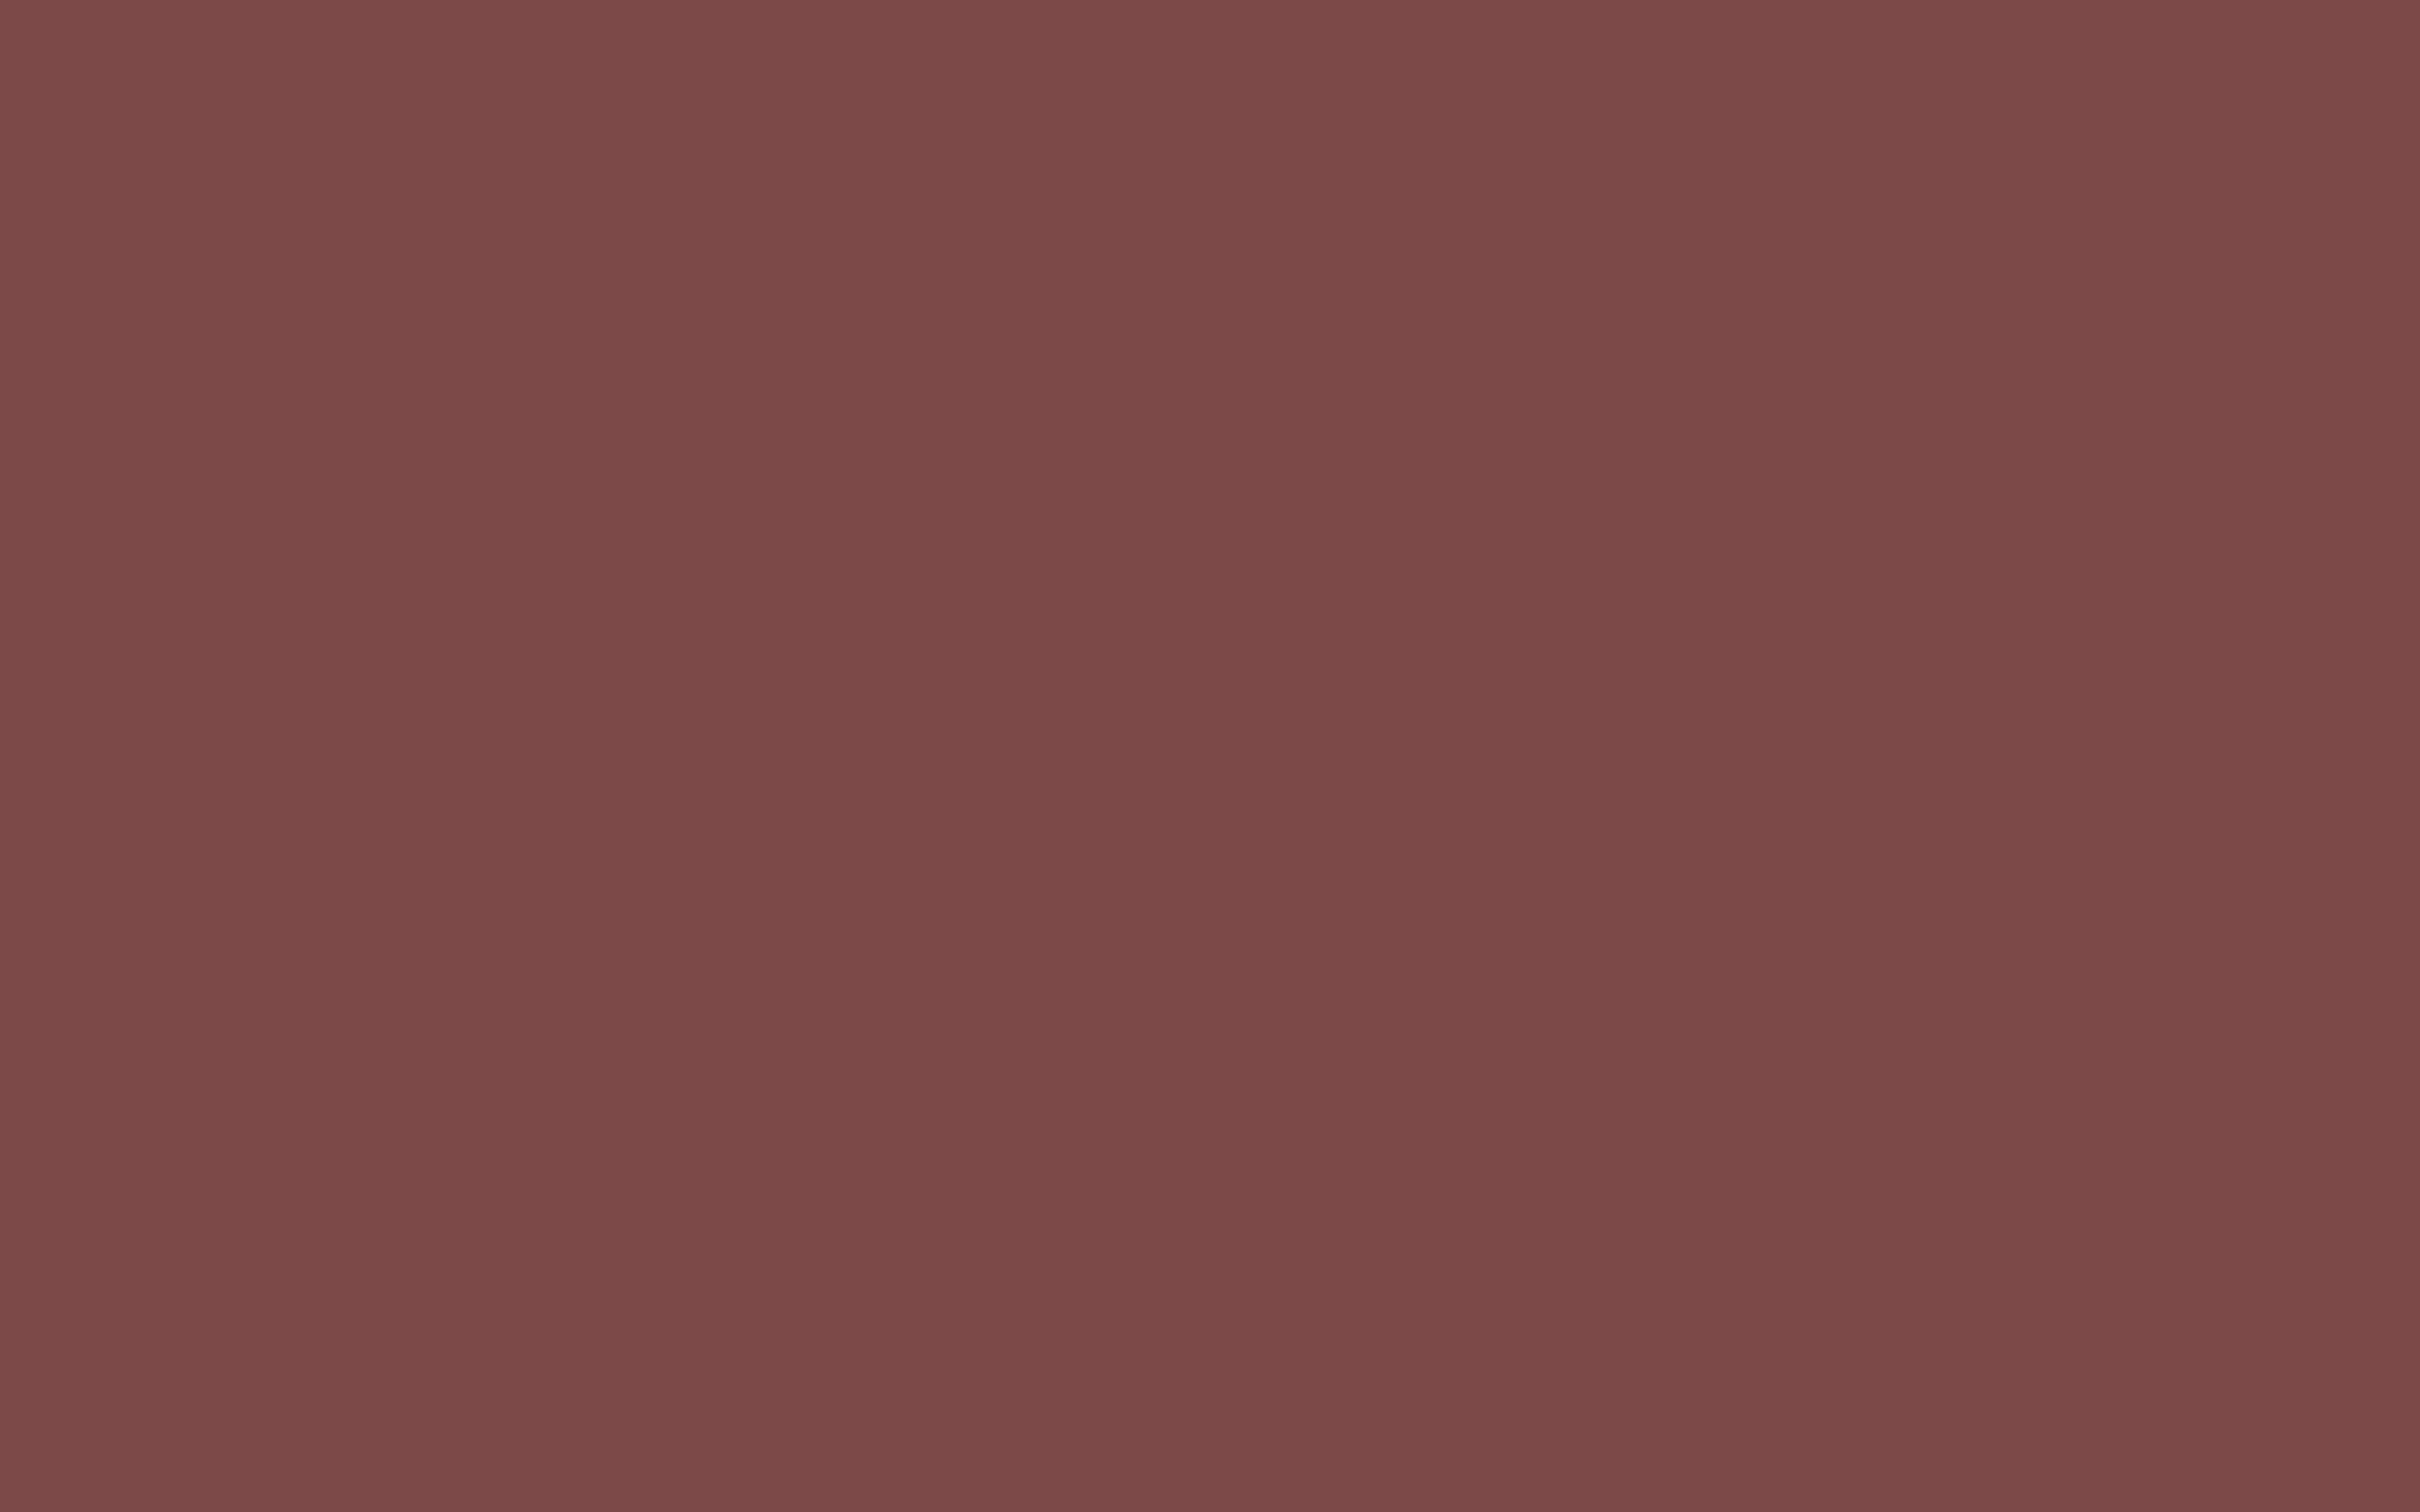 2880x1800 Tuscan Red Solid Color Background